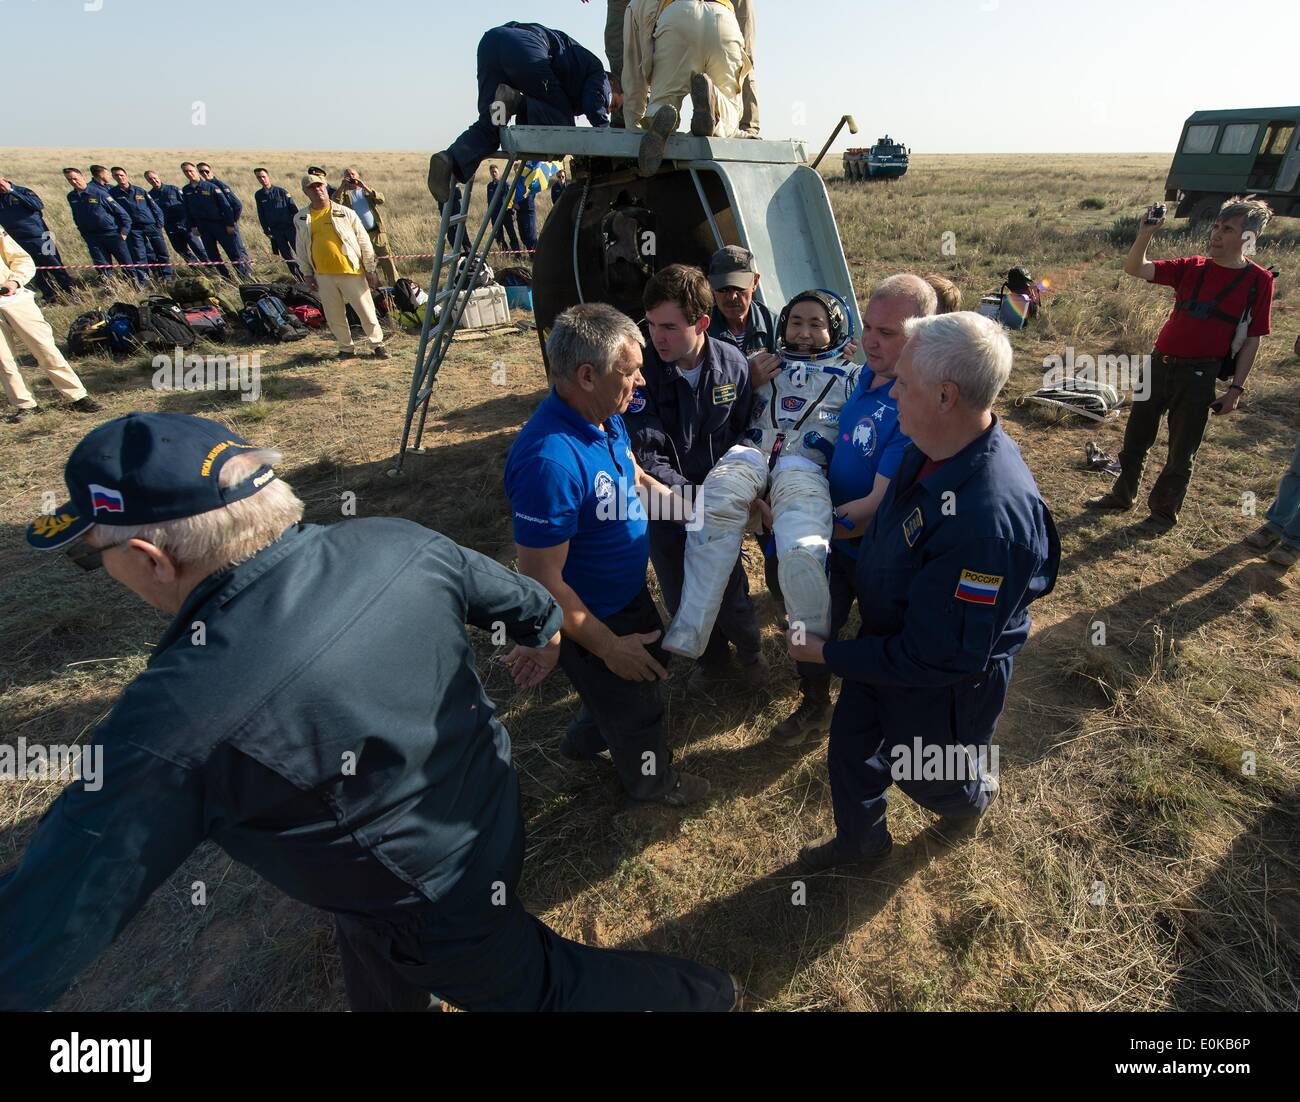 ISS Expedition 39 Commander Koichi Wakata of the Japan Aerospace Exploration Agency is carried to the medical tent just minutes after landing with fellow expedition crew members in the Soyuz TMA-11M spacecraft May 14, 2014 near the town of Zhezkazgan, Kazakhstan. Wakata, Tyurin and Mastracchio returned to Earth after more than six months onboard the International Space Station where they served as members of the Expedition 38 and 39 crews. - Stock Image